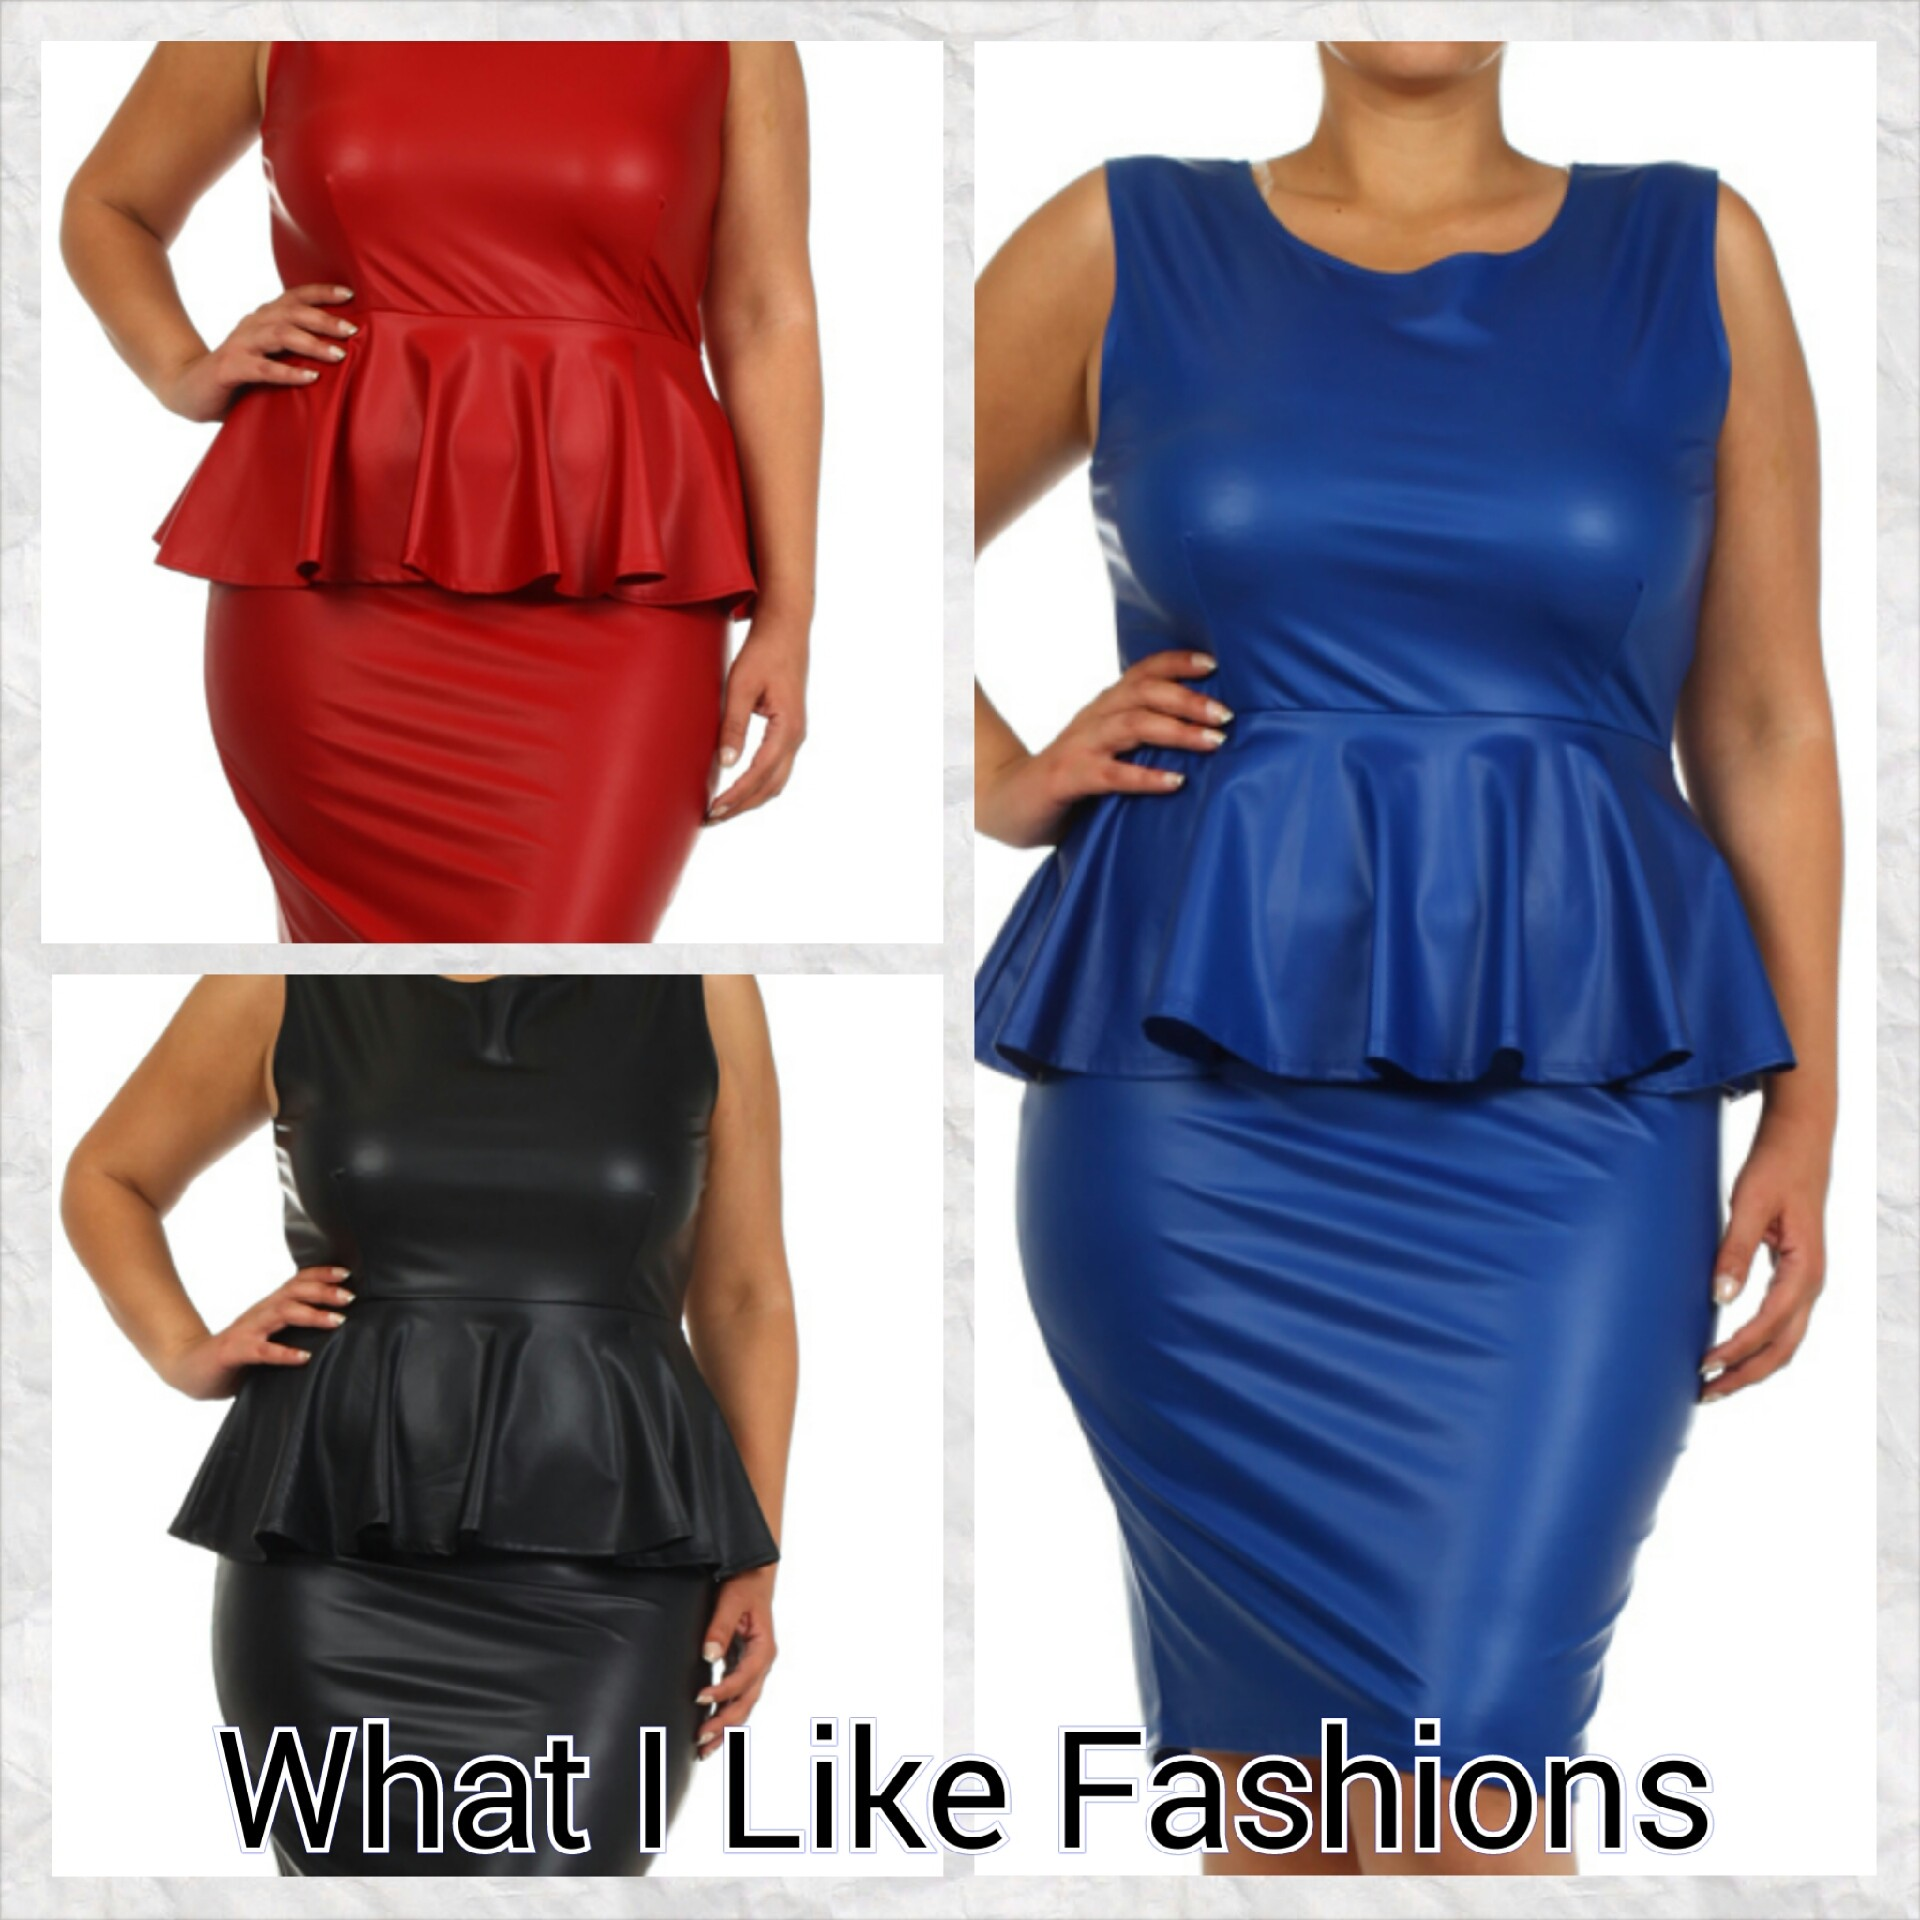 Faux Leather Plus Size Peplum Dress sold by WHAT I LIKE FASHIONS